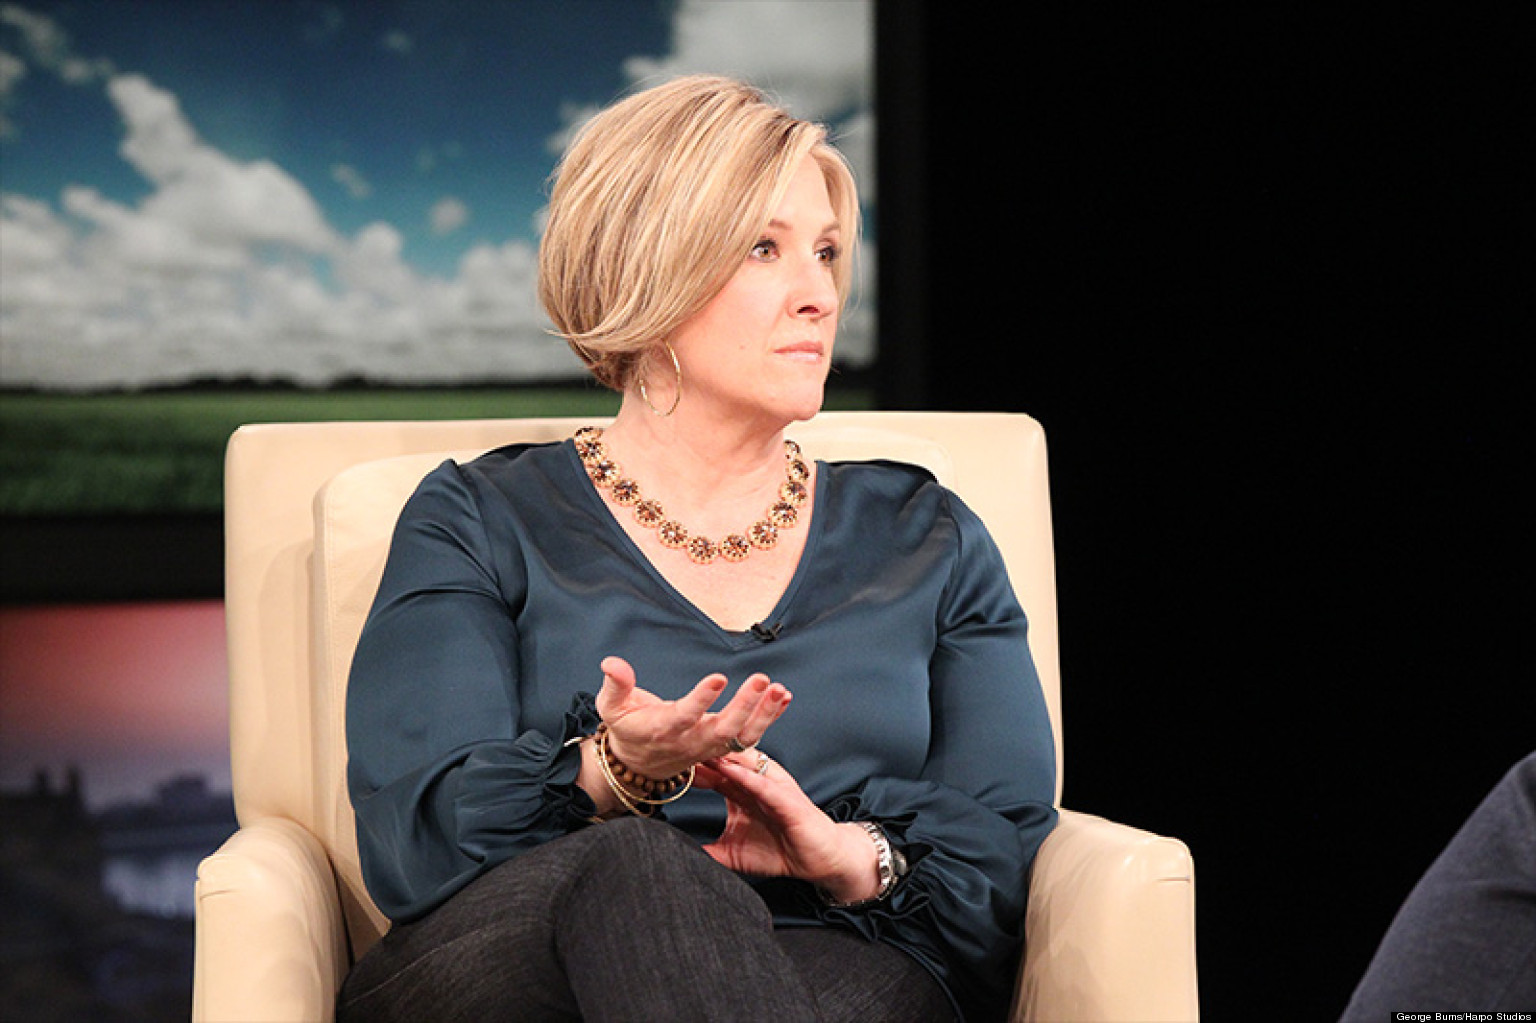 Brene Brown S Advice On Vulnerability 6 Types Of People